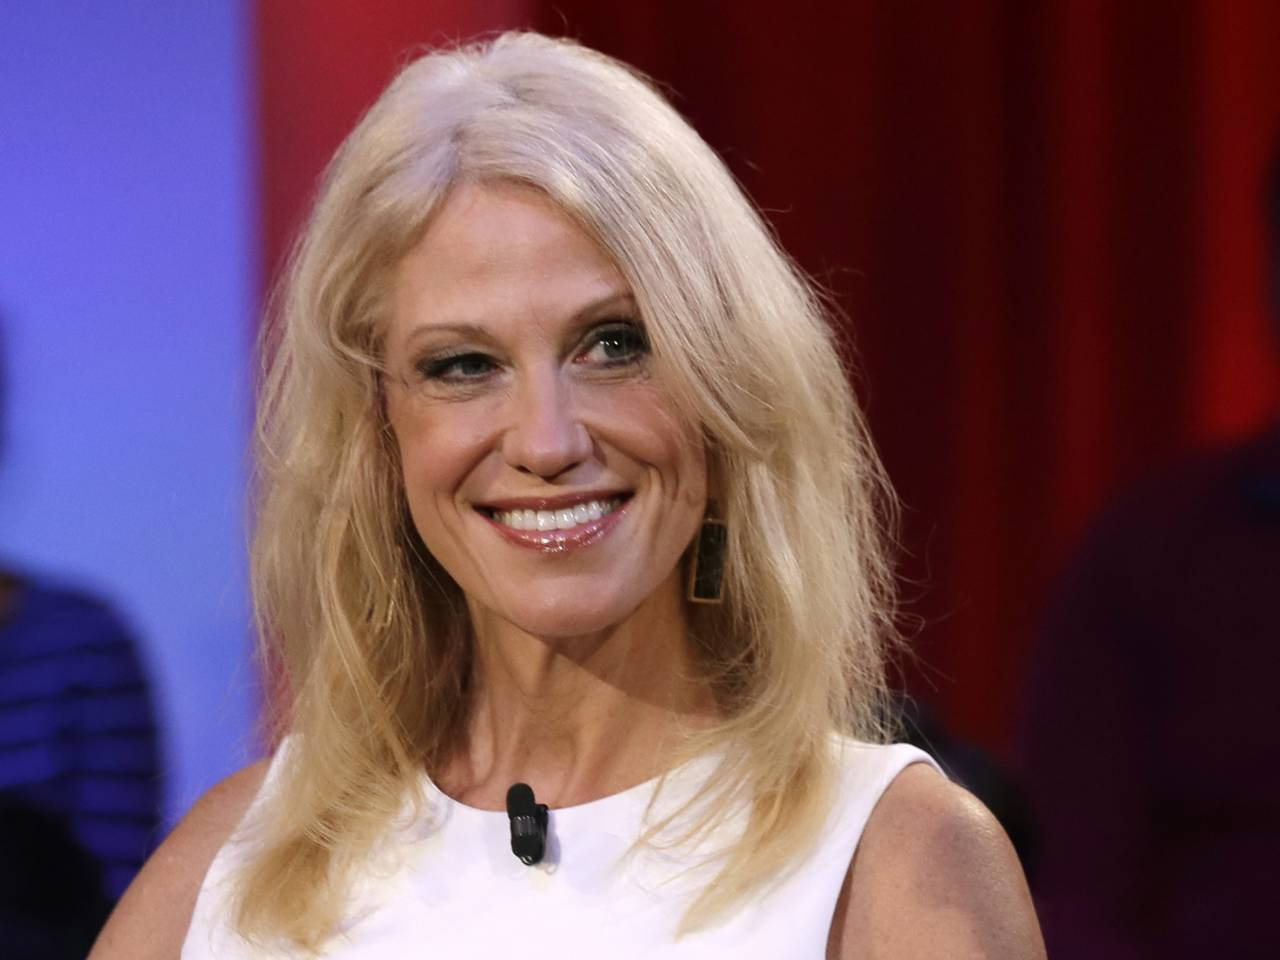 Kellyanne Conway earned a 0.2 million dollar salary - leaving the net worth at 5 million in 2017